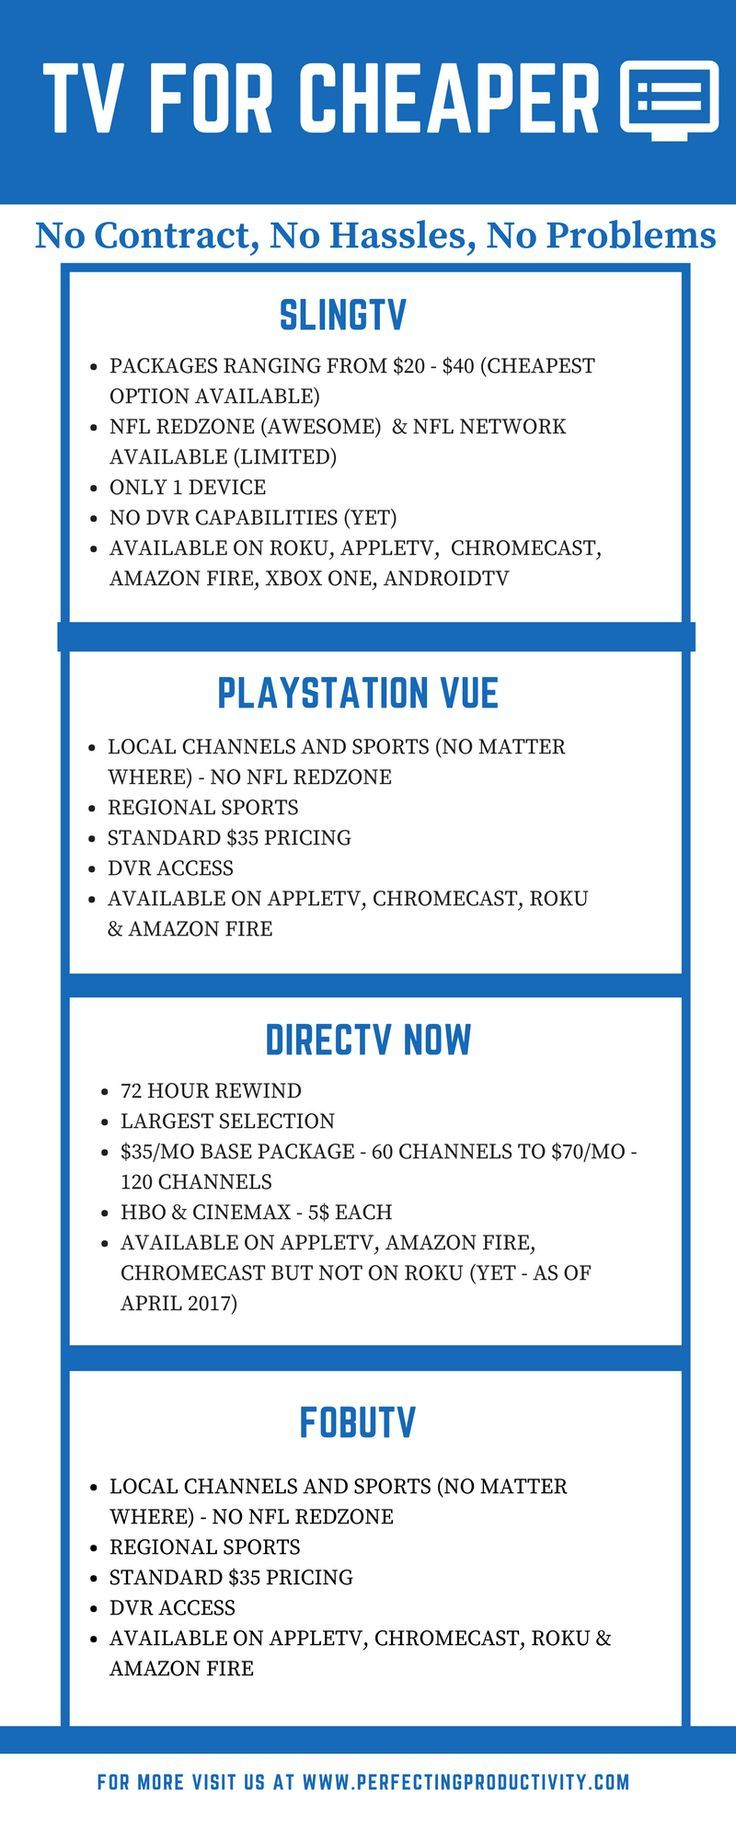 TheBestTVAlternatives - How to save hundreds on TV while getting all of the great channels you love.  Get cheaper TV service without compromising the shows or channels you love.  These are contract free, cut the cord TV streaming services include live TV with sports, movie channels and locals.  No contract, cheap pricing.